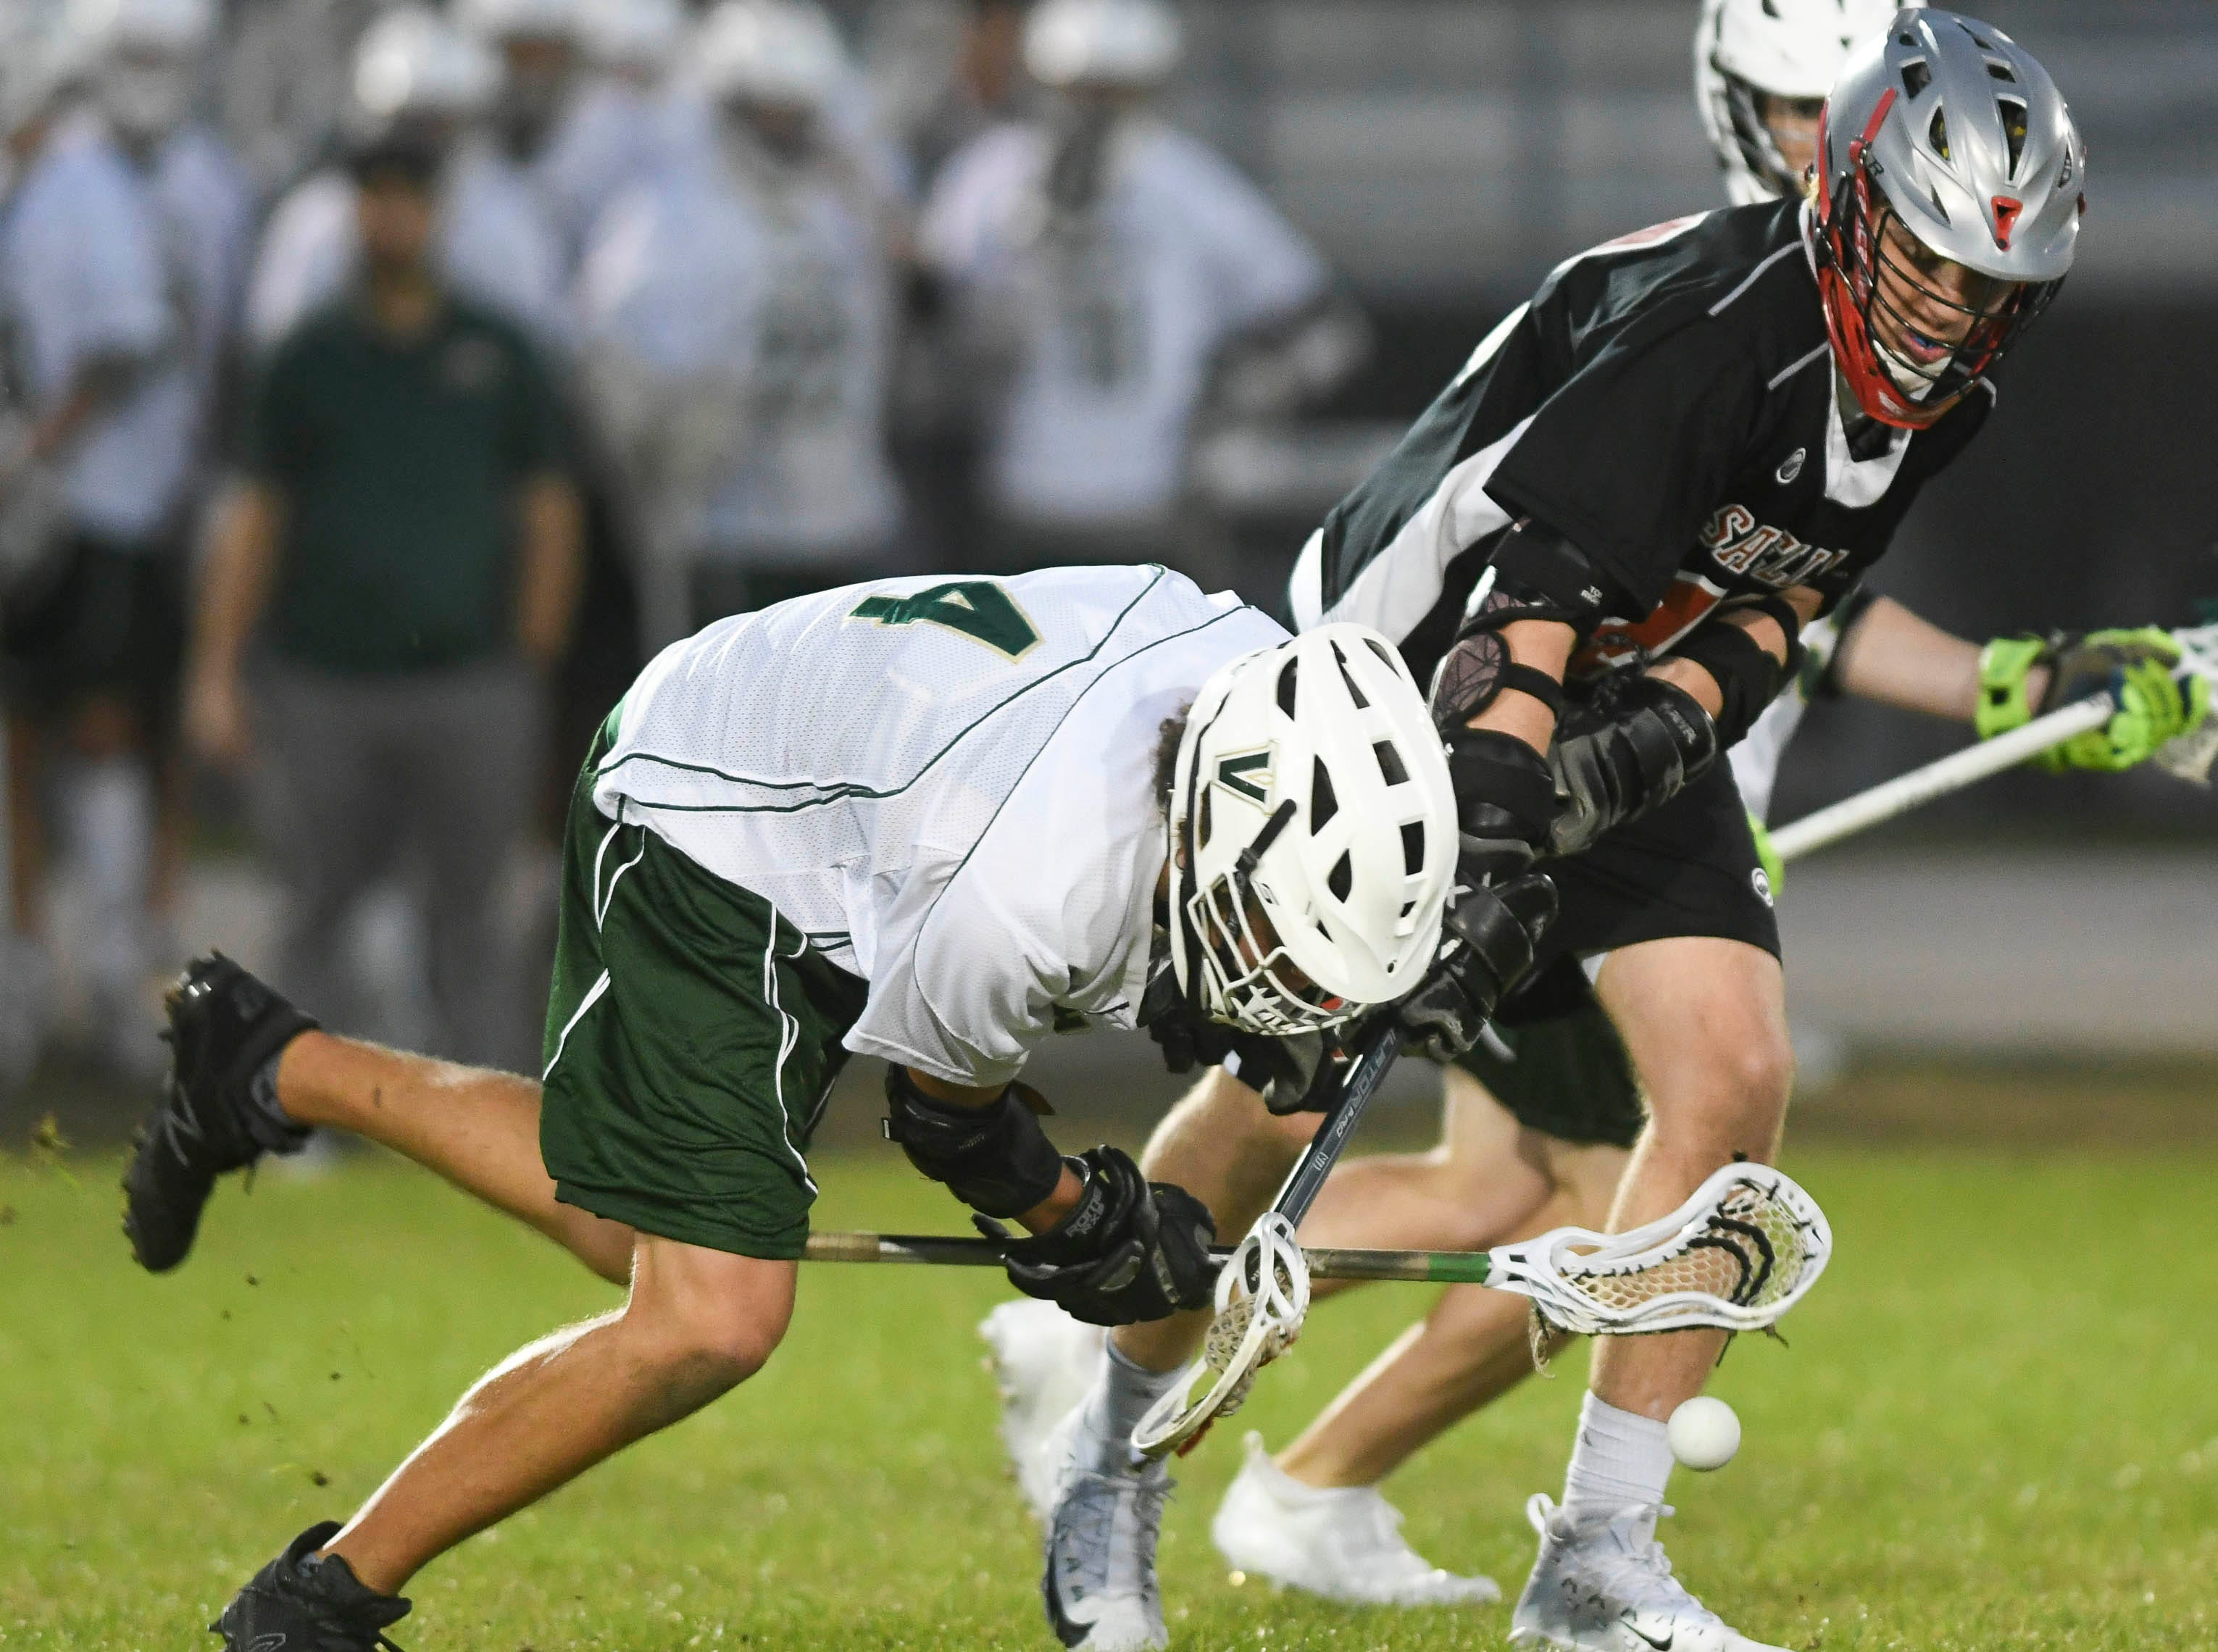 Gavin Wessell of Viera is challenged by Sebastian Rowe of Satellite during Tuesday's game.